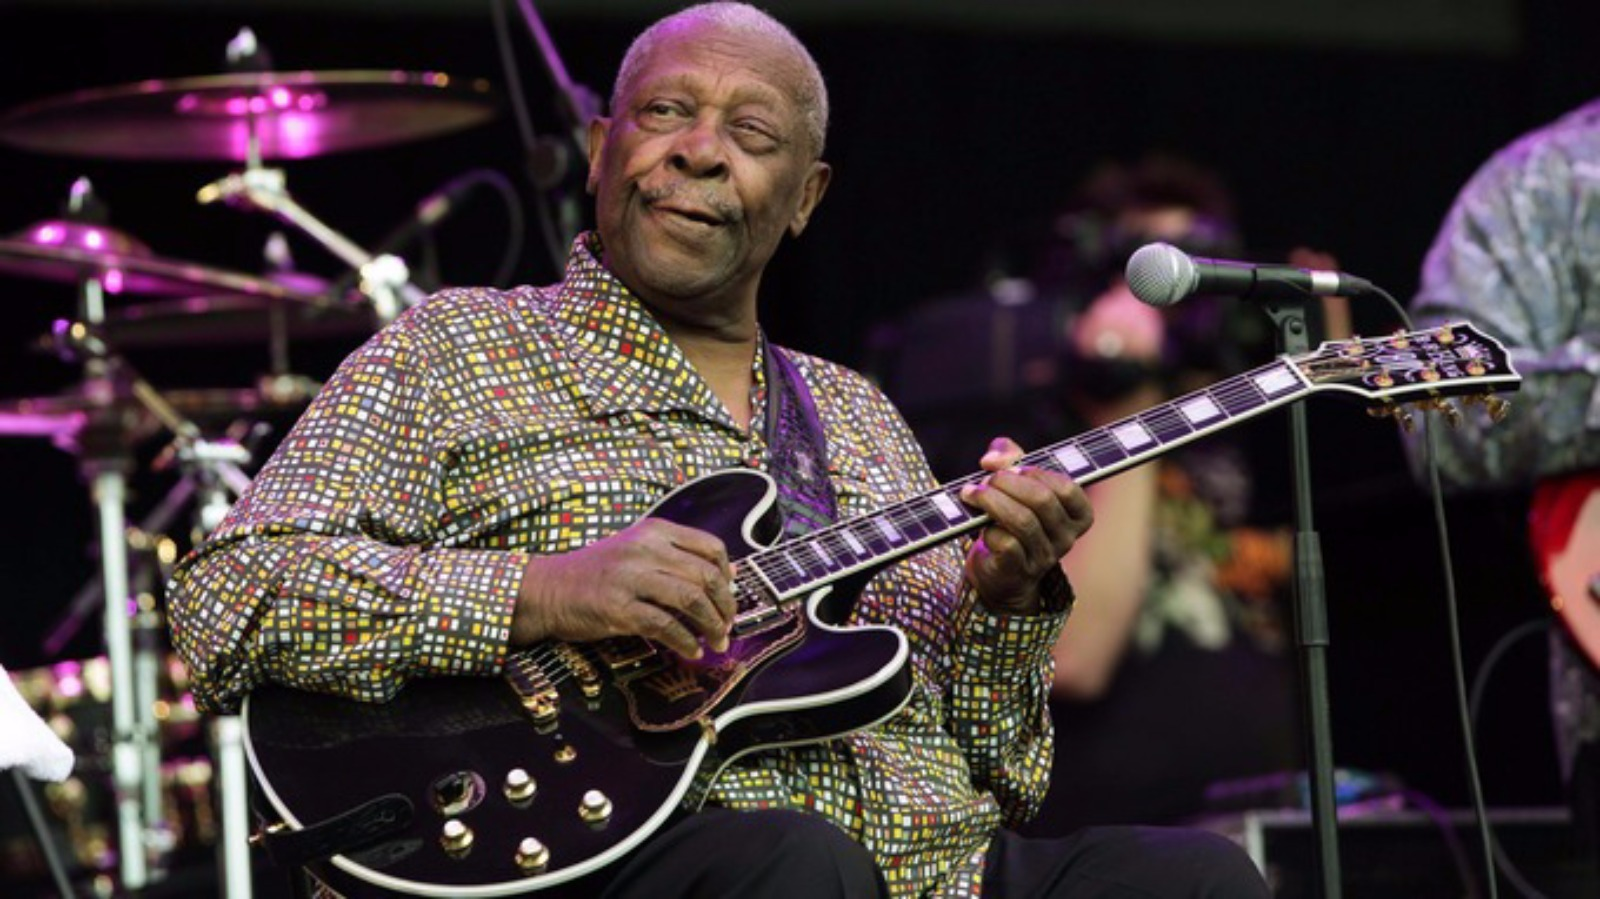 Blues Legend Bb Kings At 89